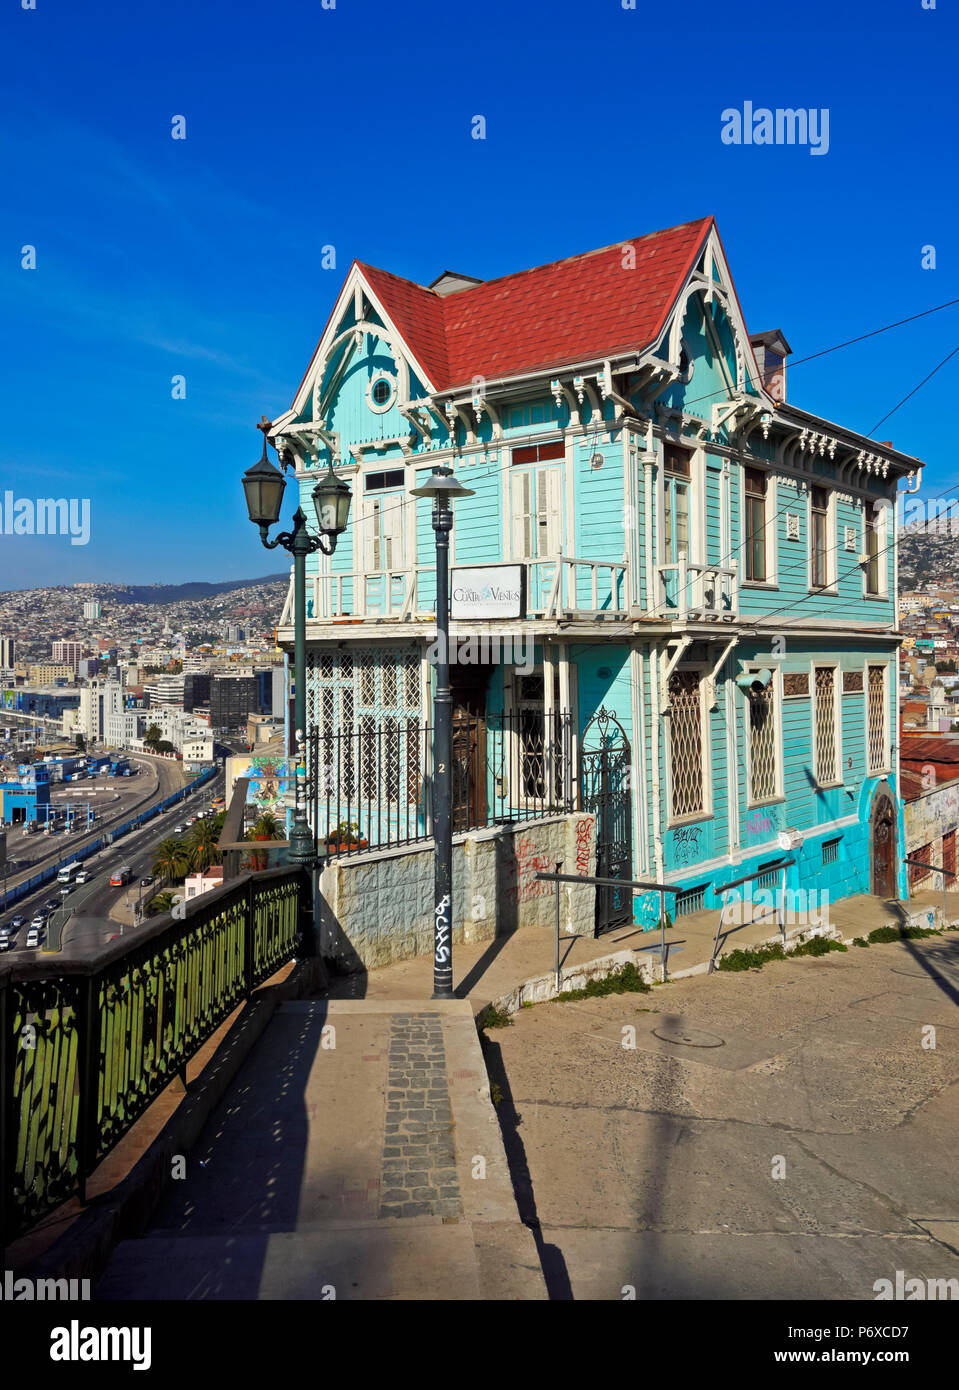 Chile, Valparaiso, Artilleria Hill, View of the characteristic blue house Casa Cuatro Vientos Hotel and Restaurant. - Stock Image